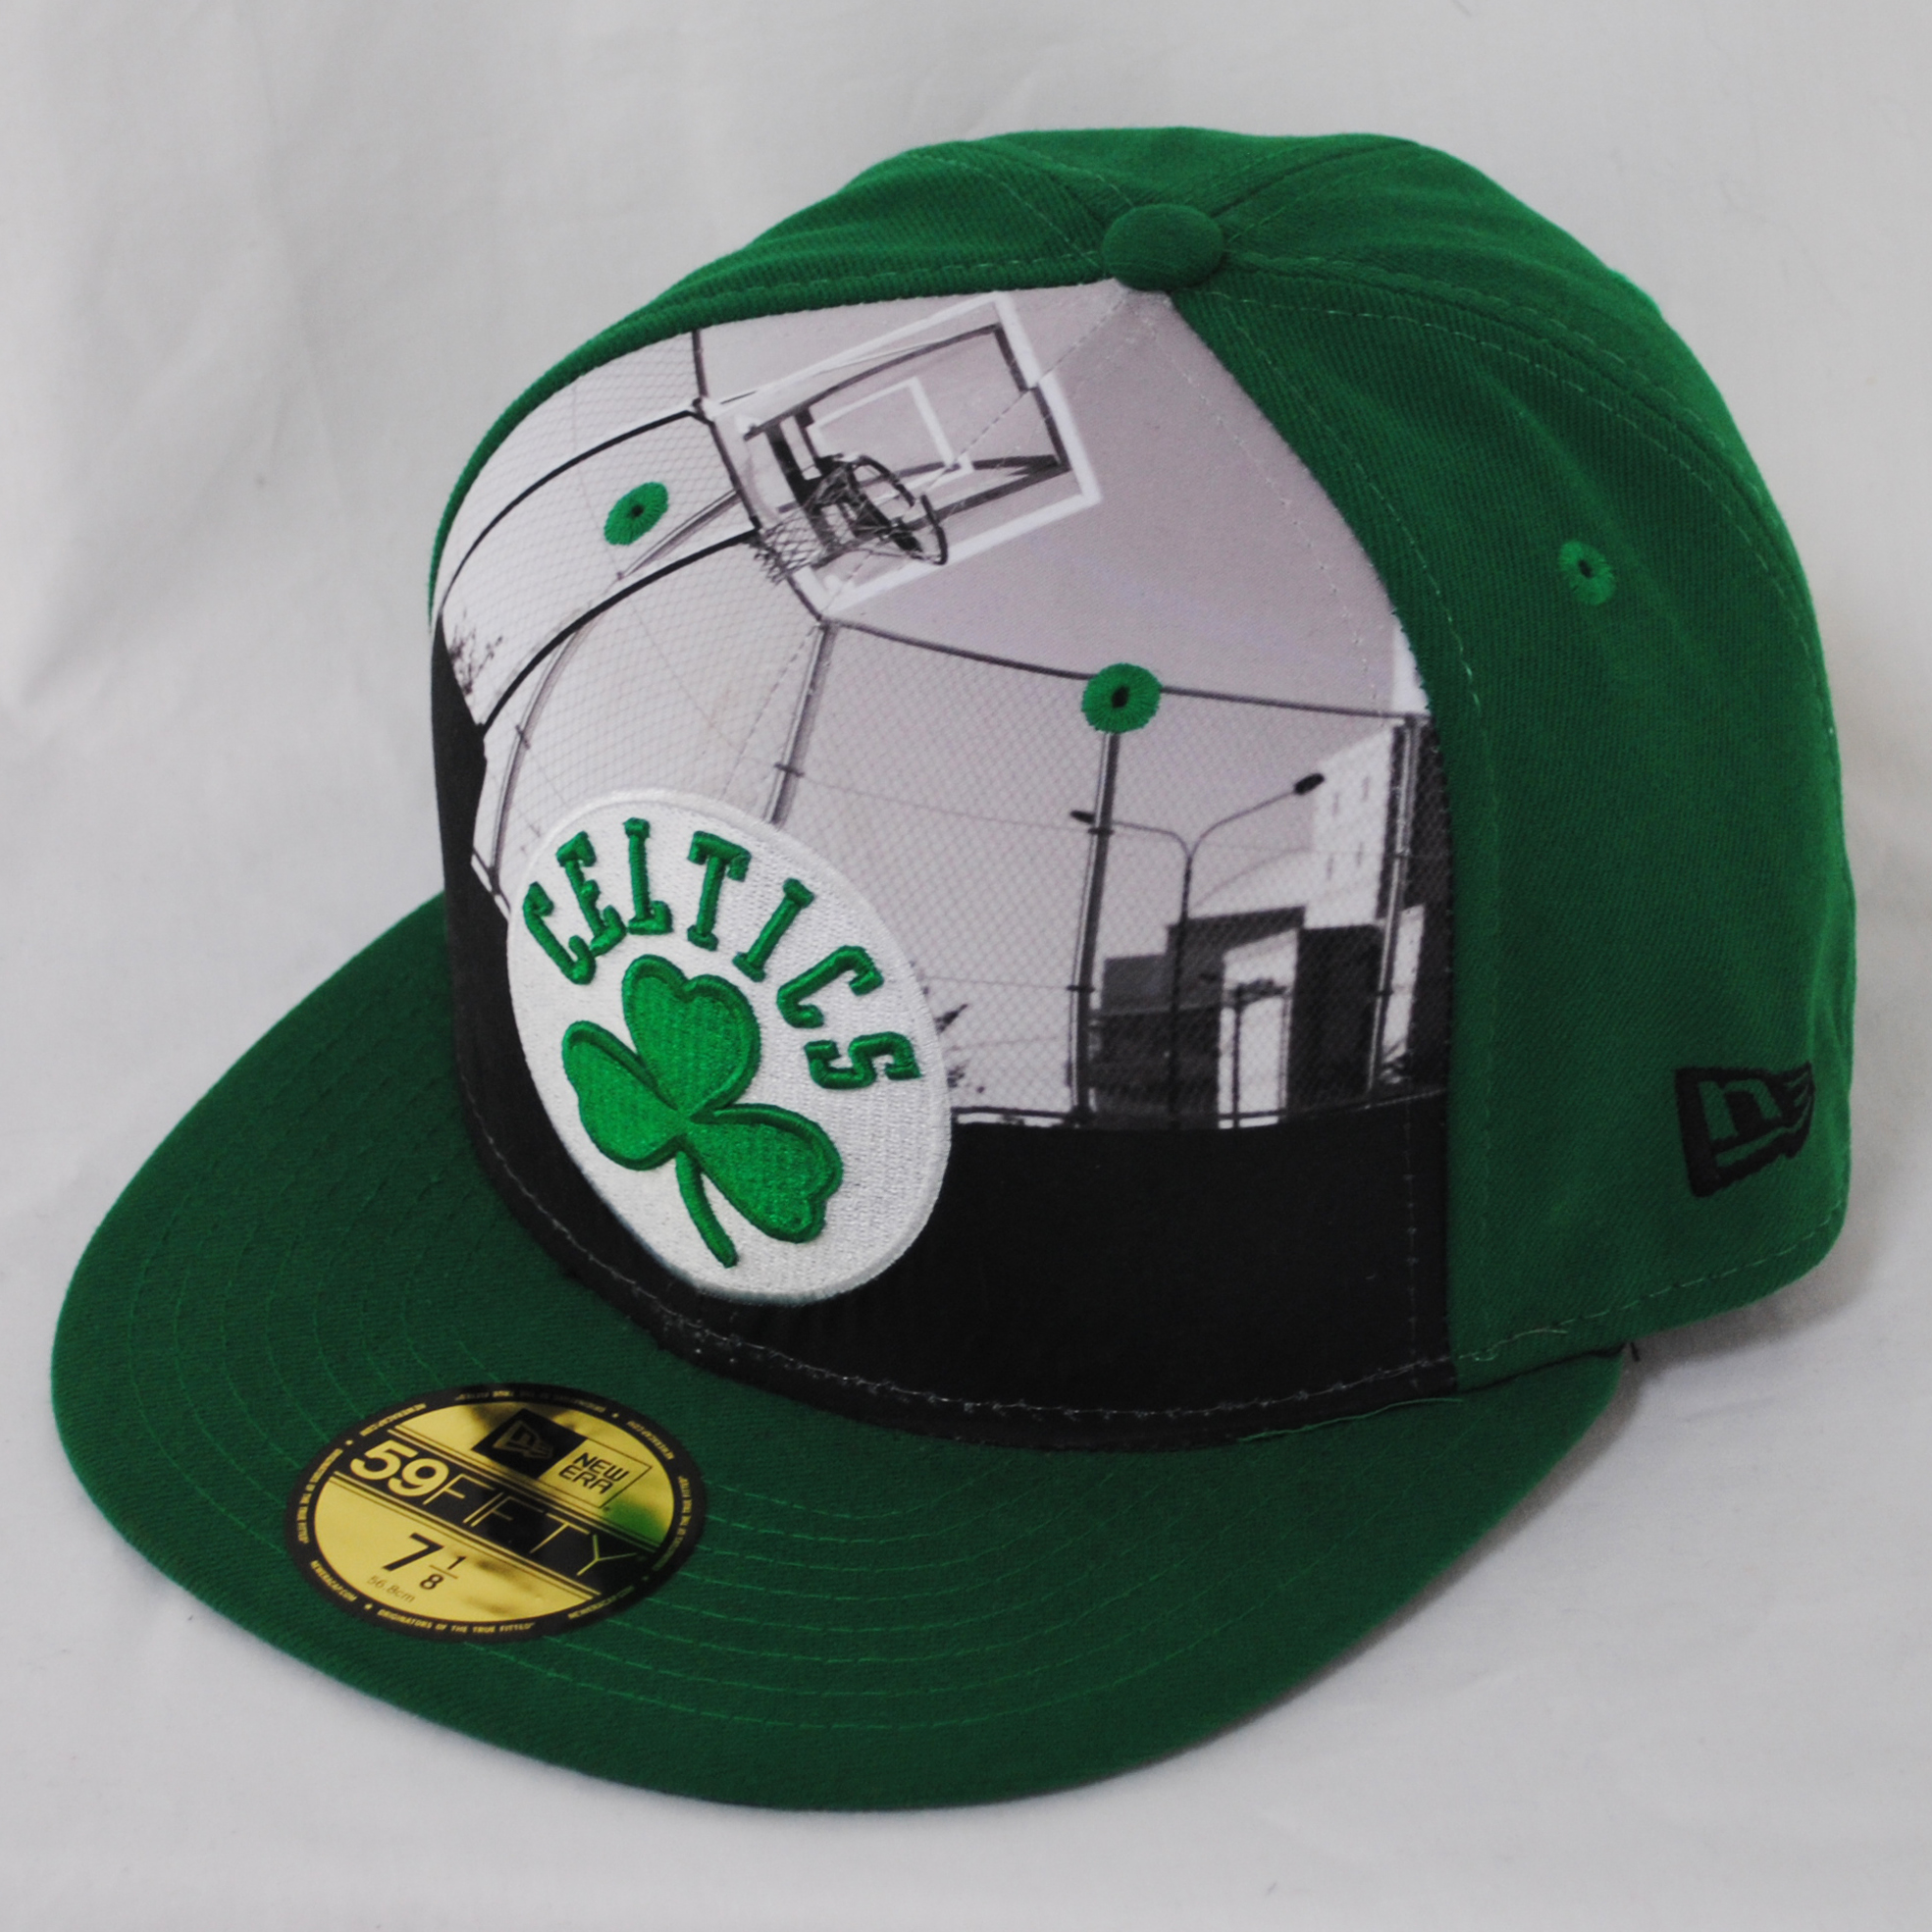 new era 59fifty round dway boston celtics green nba fitted flat peak hat cap ebay. Black Bedroom Furniture Sets. Home Design Ideas